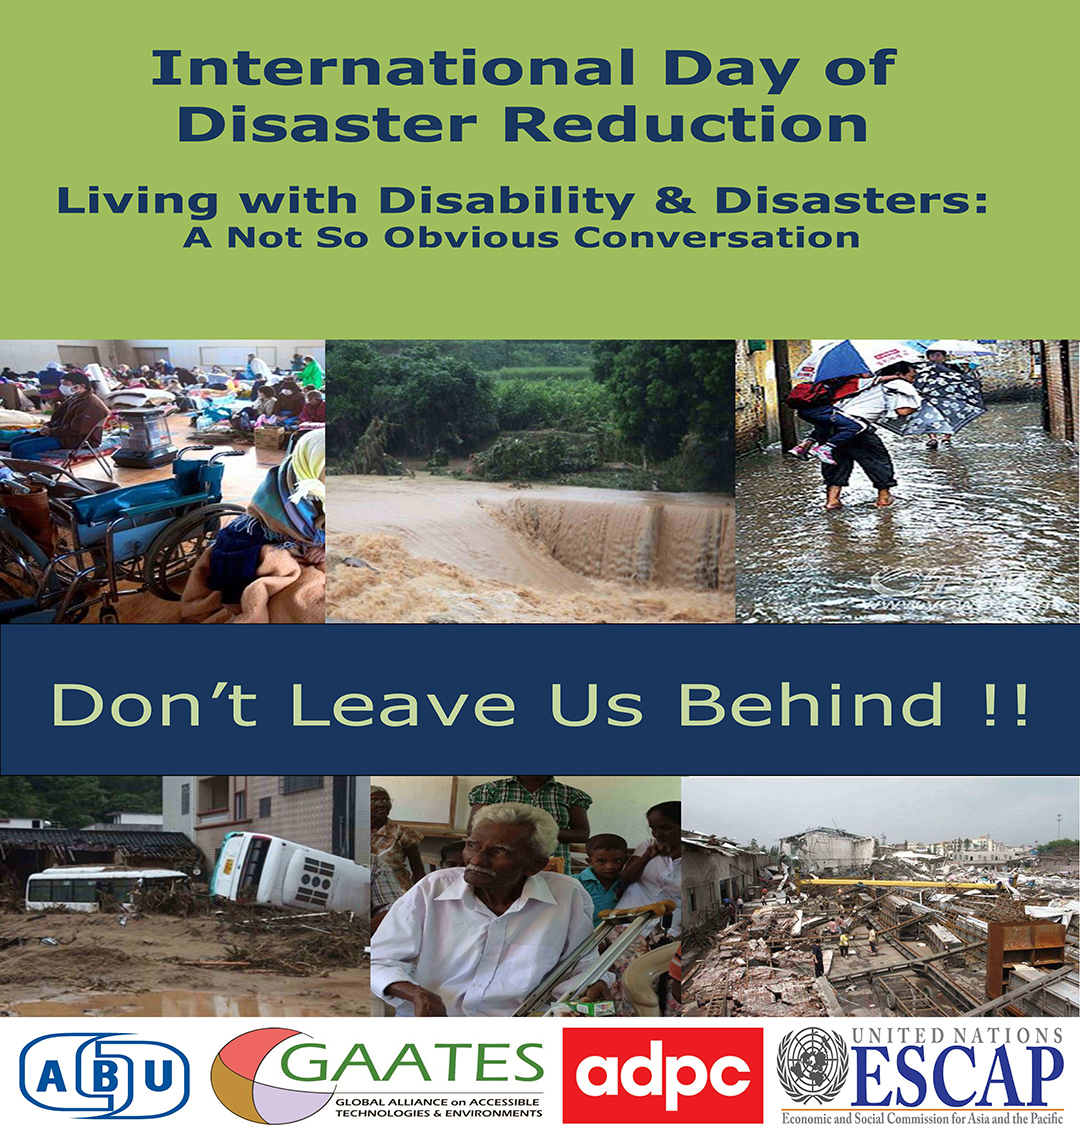 International Day of Disaster Reduction Living with Disability & Disasters: A Not So Obvious Conversation October 13, 2013 Dont leave us behind Poster